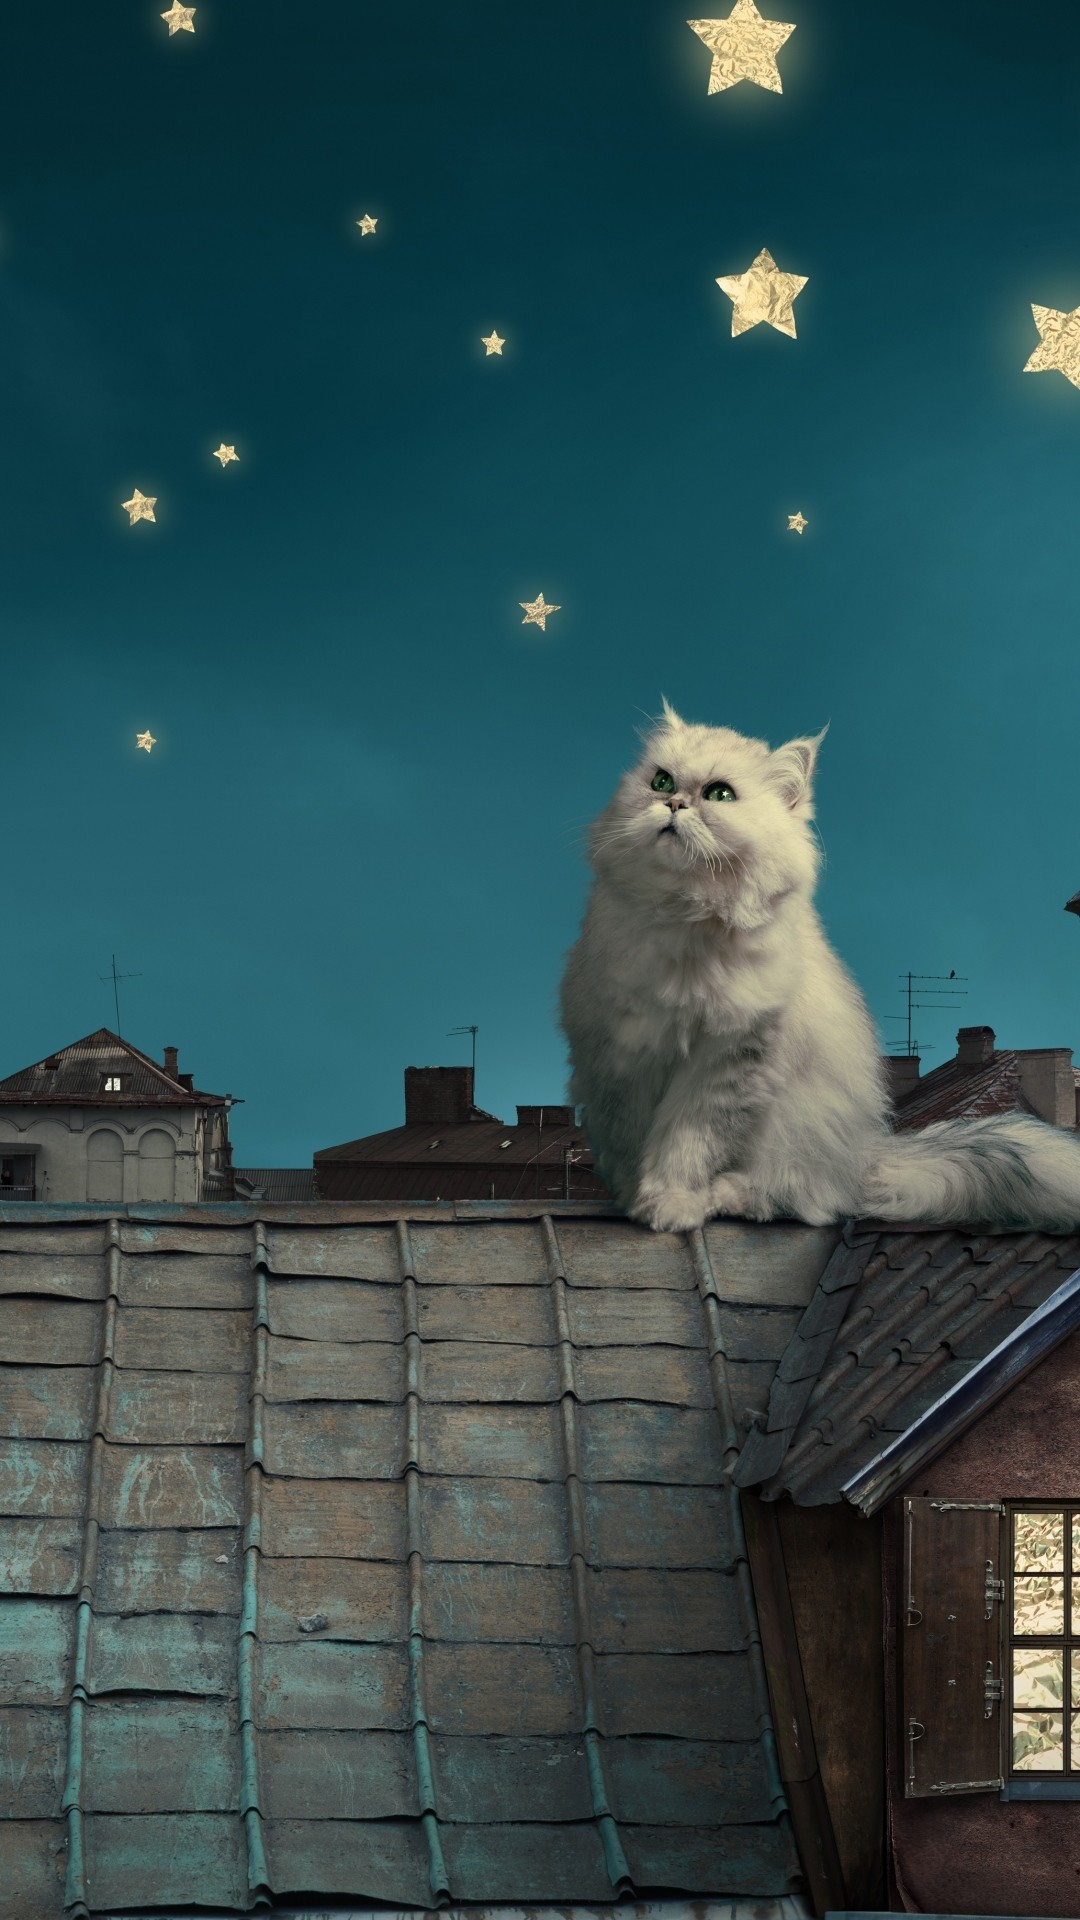 1080x1920  Wallpaper white persian cat, kitten, fairy tale, fantasy, roofs,  houses